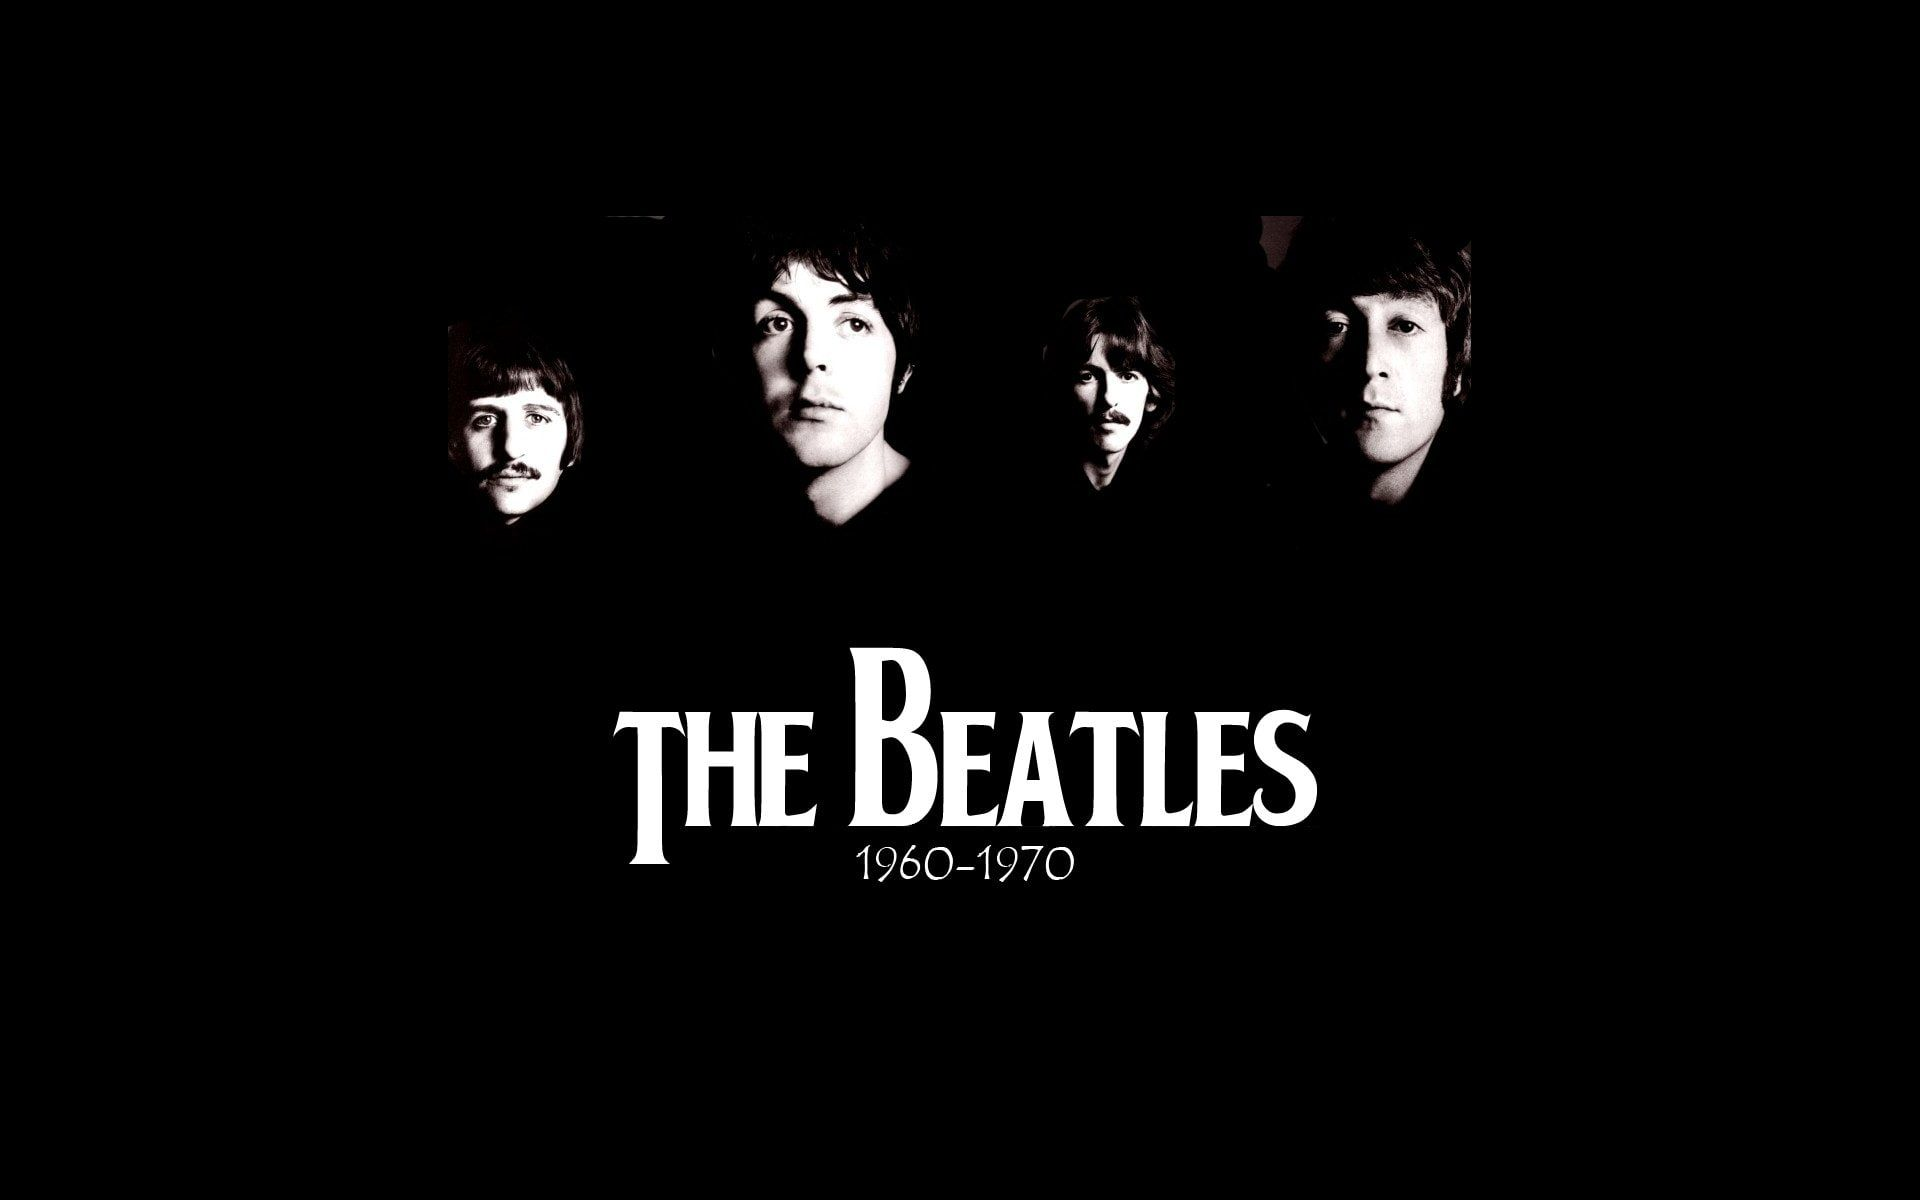 The Beatles Wallpaper and the Most Famous Face